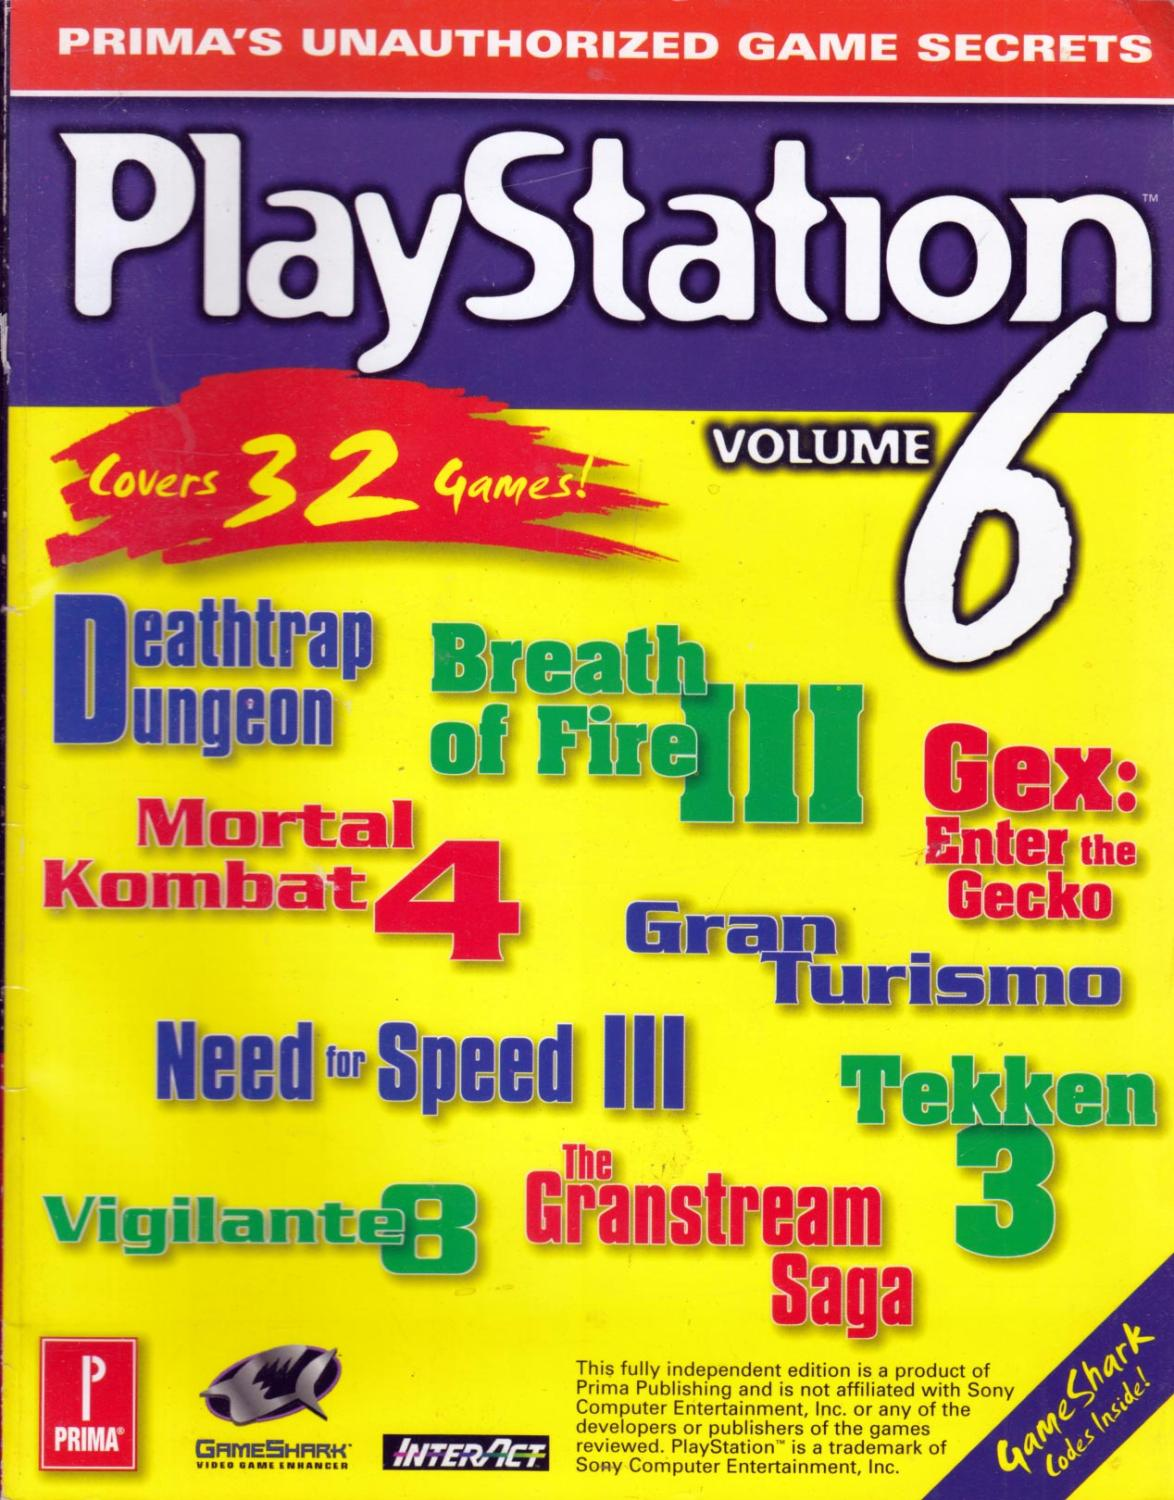 Playstation Game Secrets Volume 6 Prima S Unauthorized Game